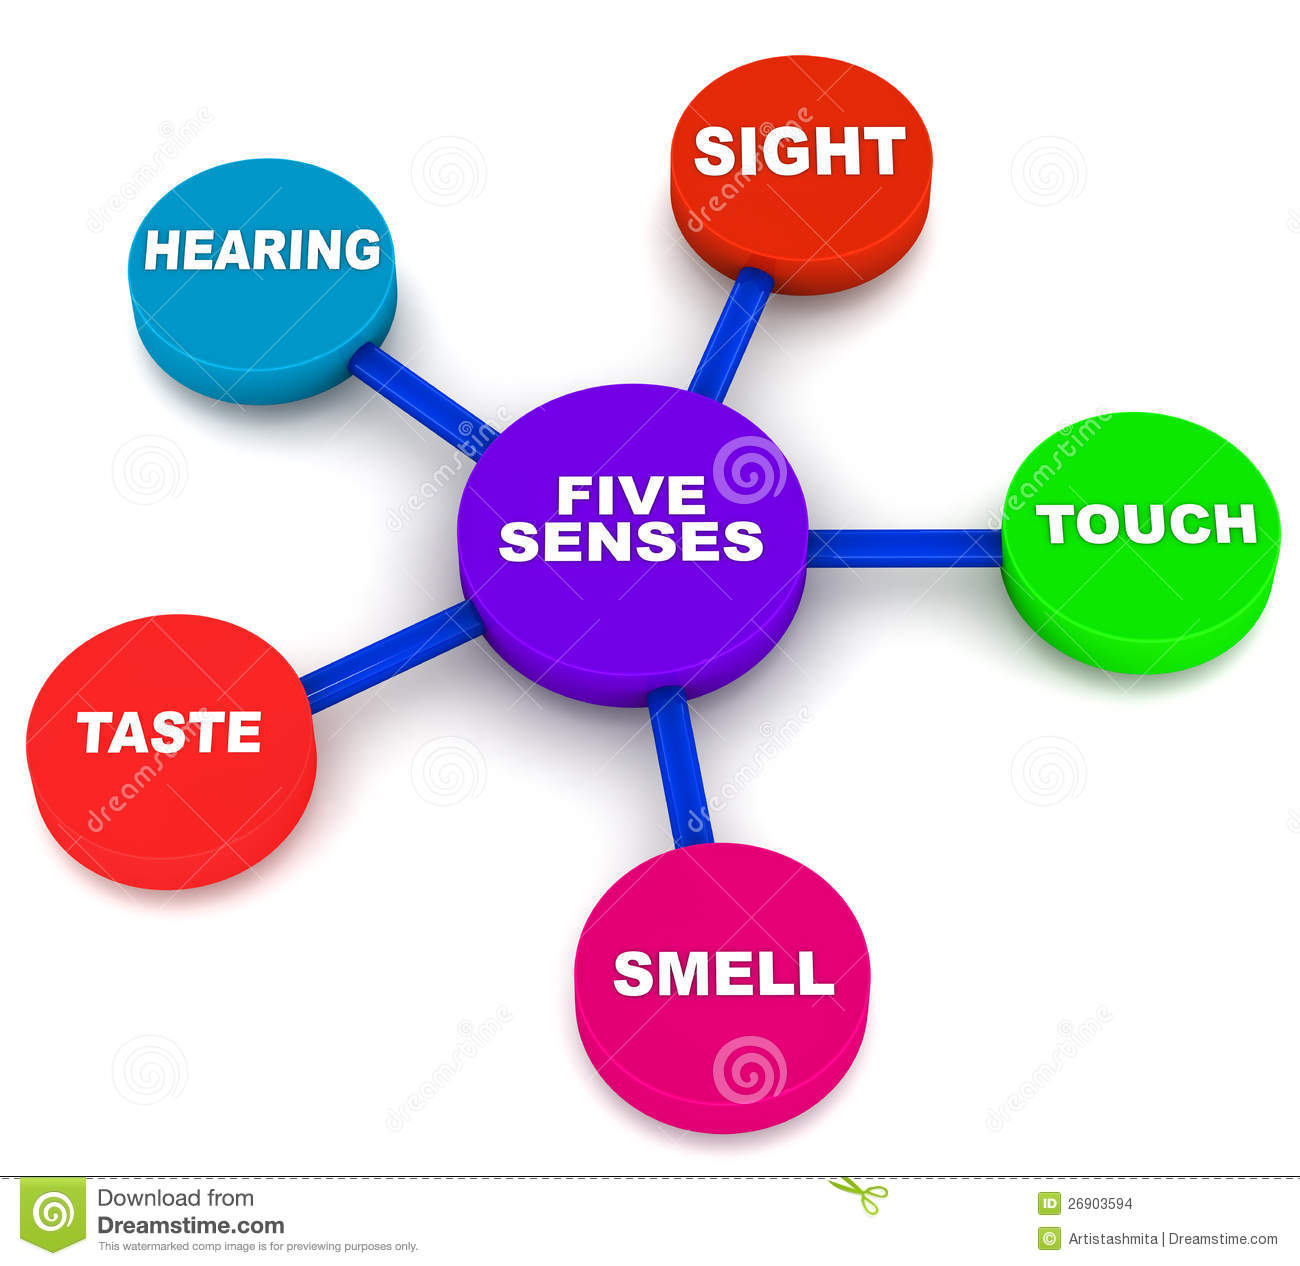 humans sense of taste Why is smell important air  smell is vital for survival of most humans and animals as it  smell is also important as it can affect our sense of taste.